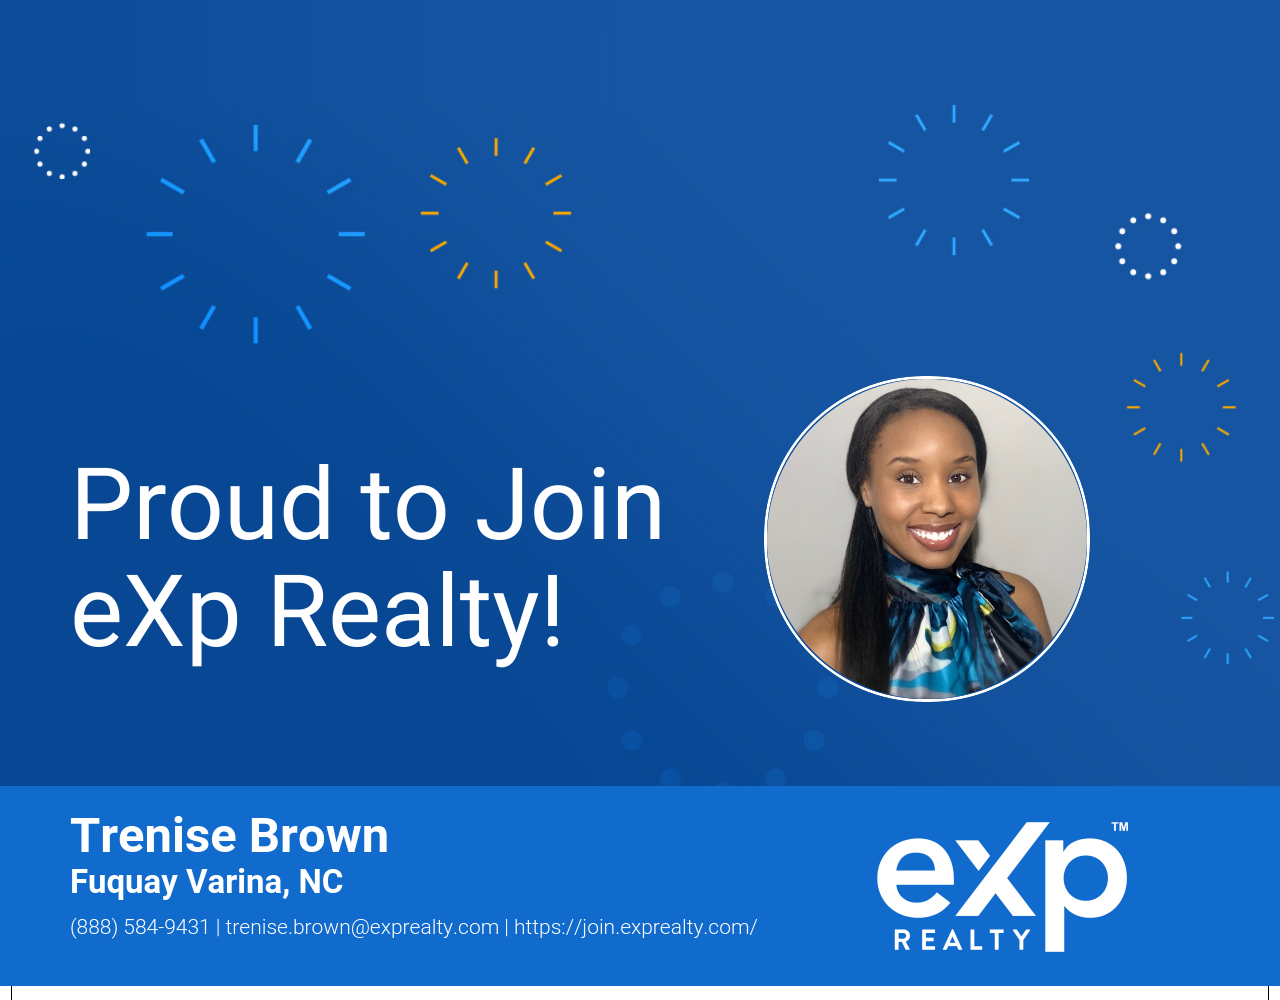 eXp Realty Welcomes Trenise Brown!